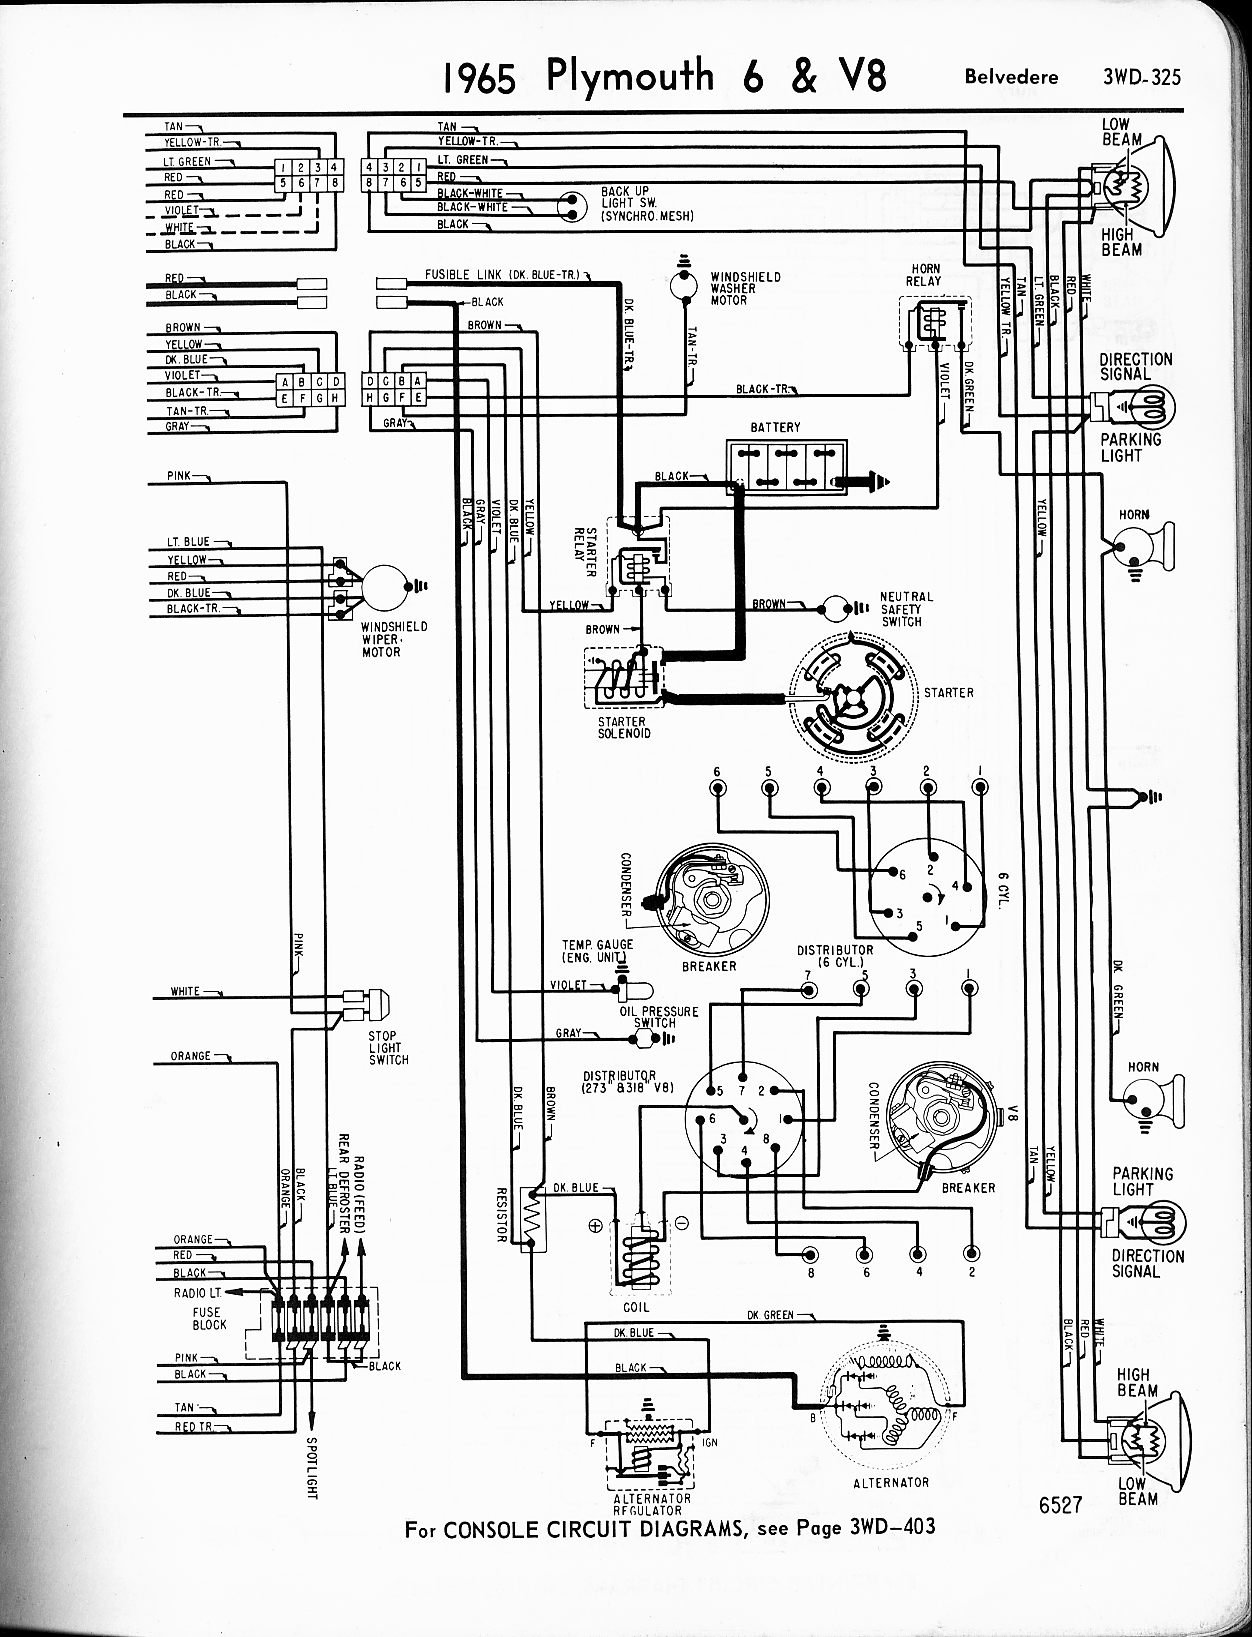 Plymouth ac wiring diagrams wiring diagrams 1956 1965 plymouth wiring the old car manual project 1965 plymouth 6 v8 belvedere right page plymouth ac